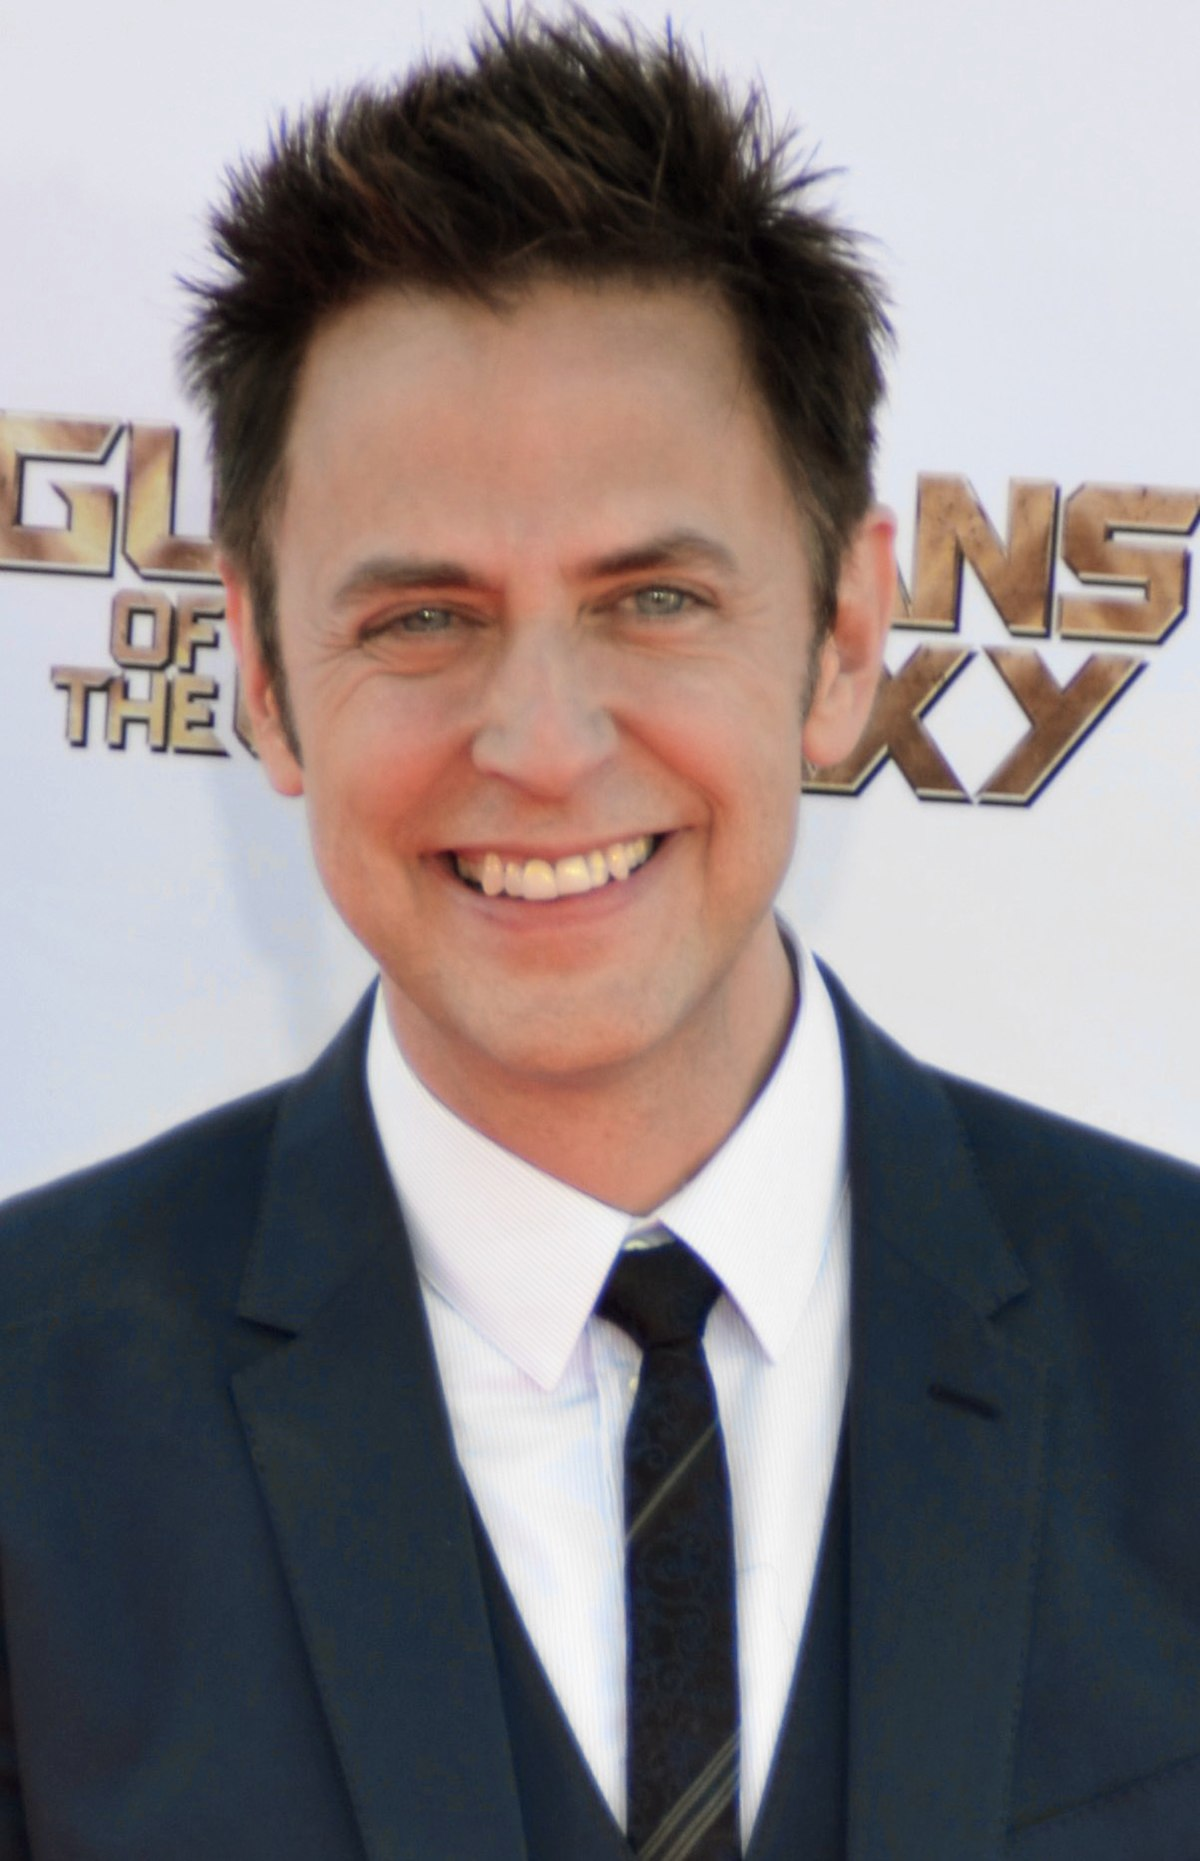 james gunn - photo #6